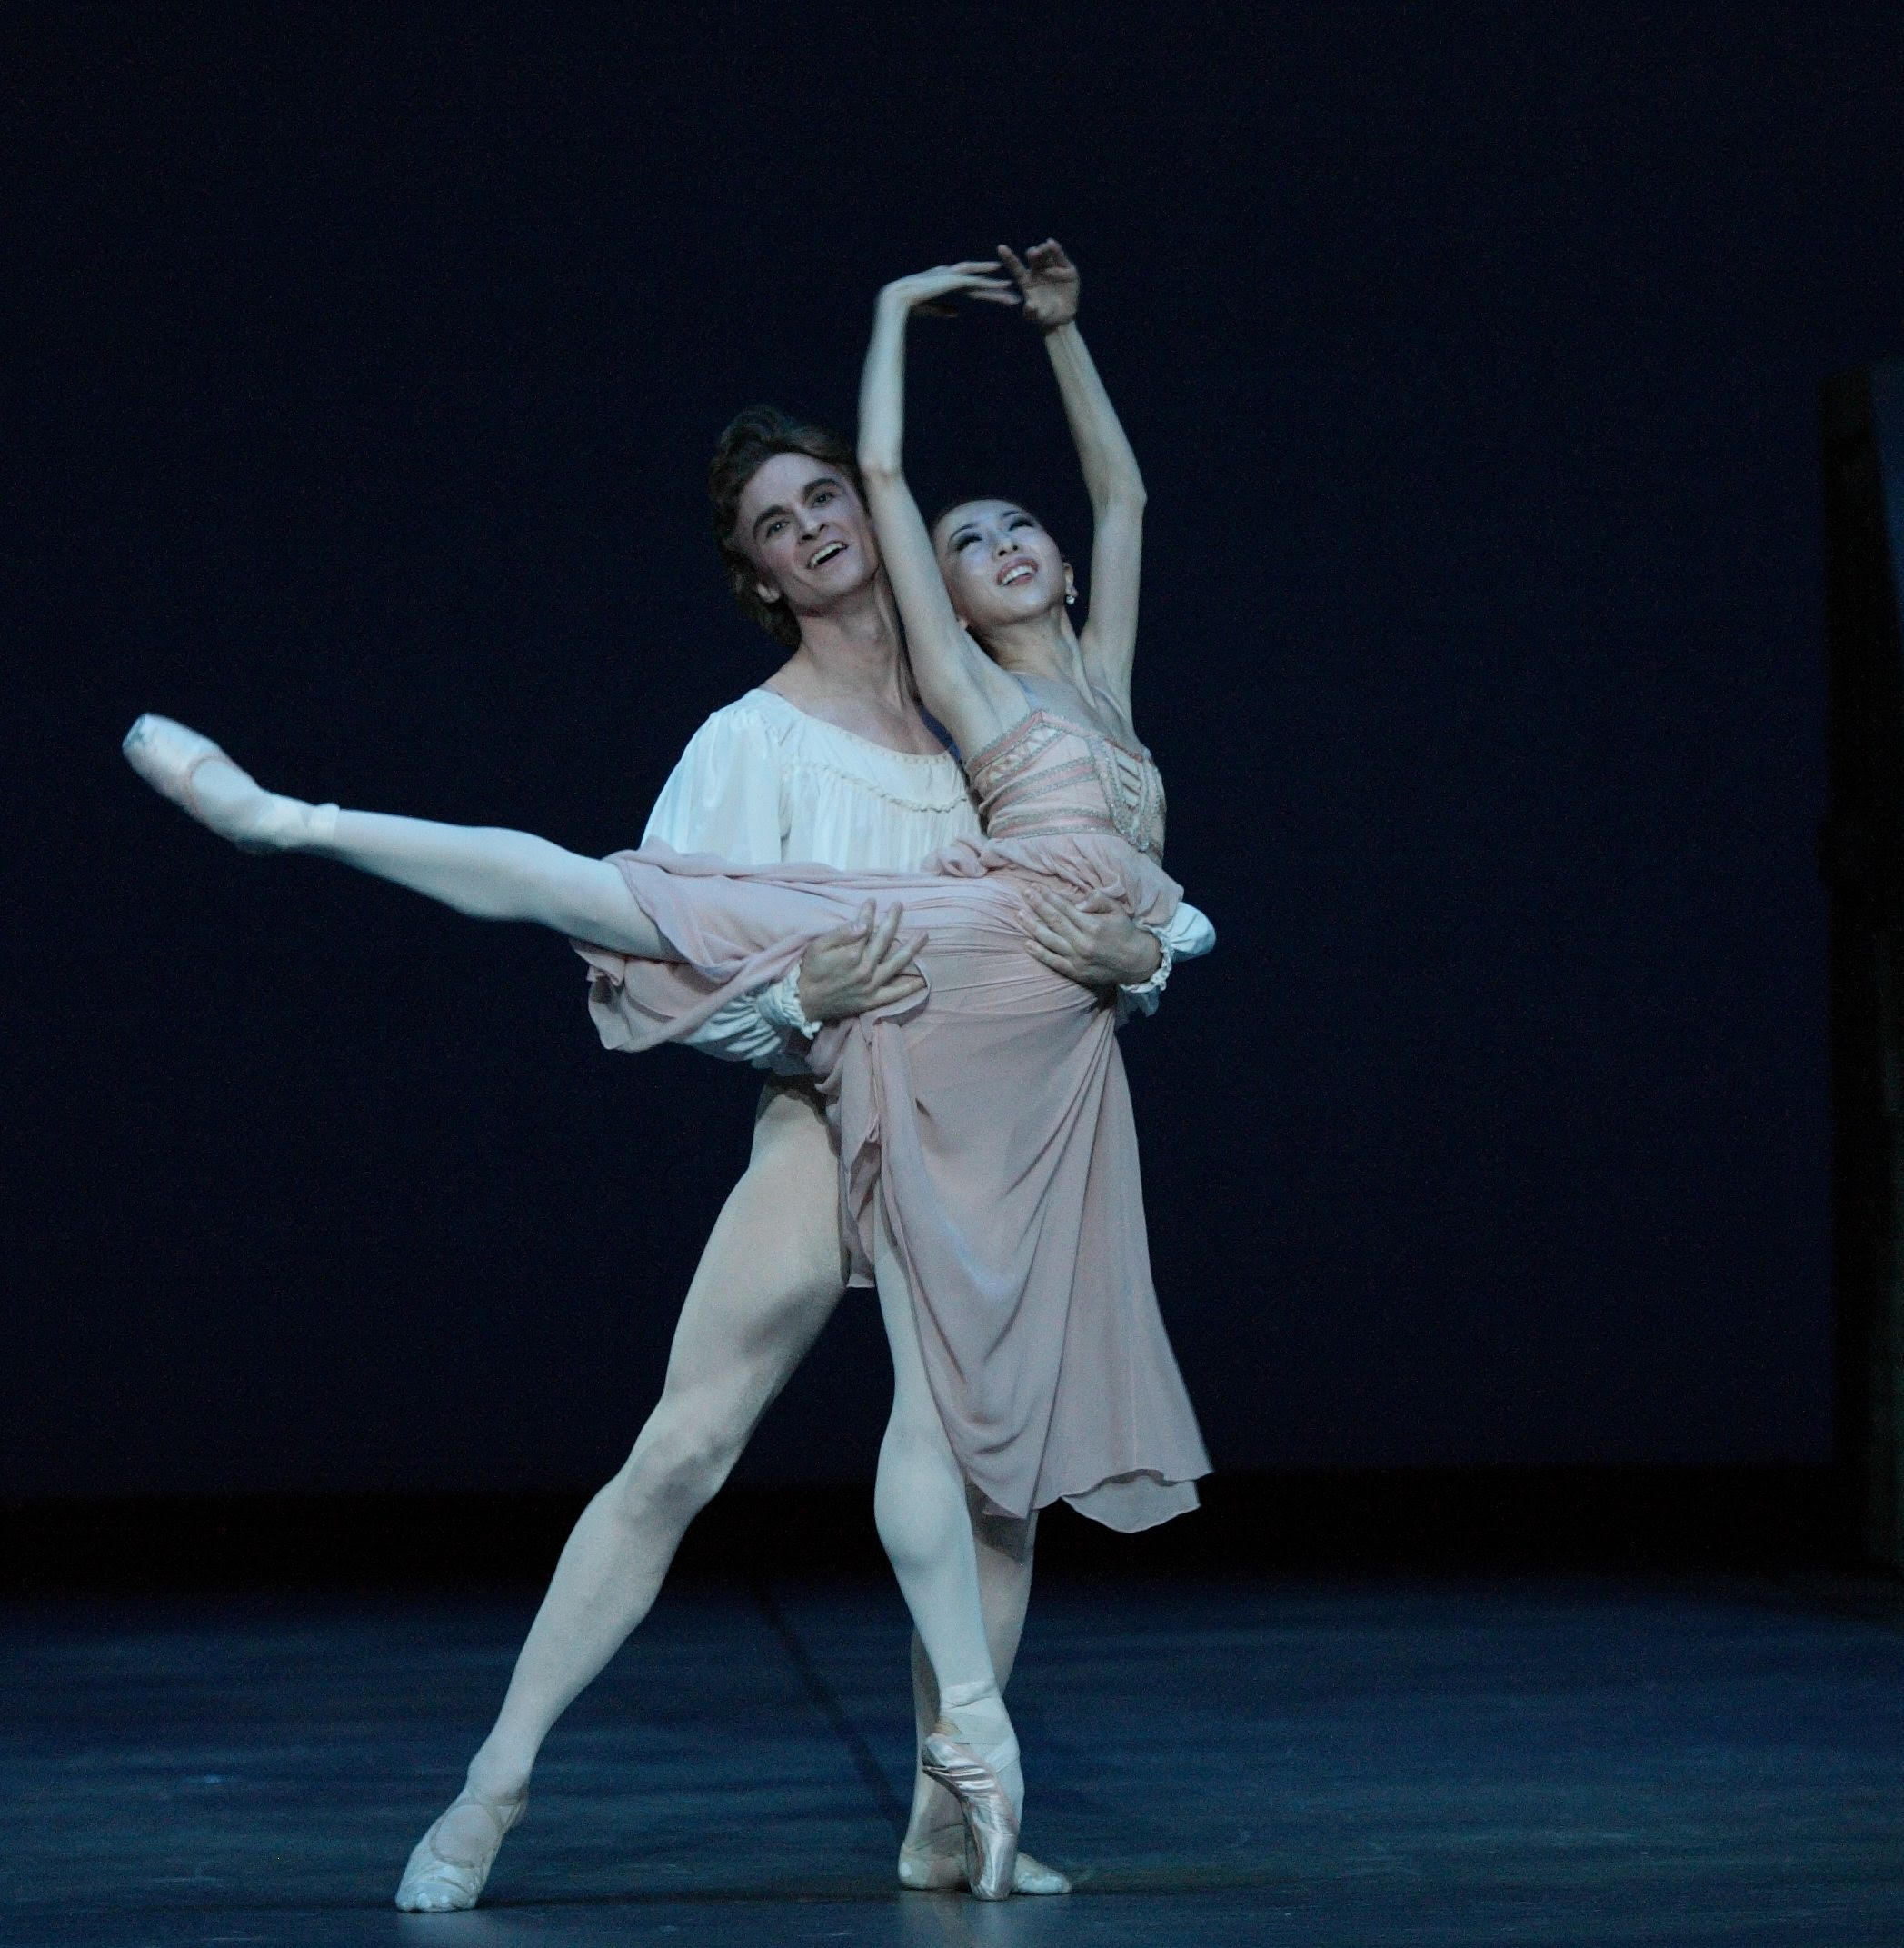 Houston Ballet principal dancers Yuriko Kajiya and Jared Matthews are performing for the first time in the Philippines, in Ballet Manila's    American Stars Gala   .